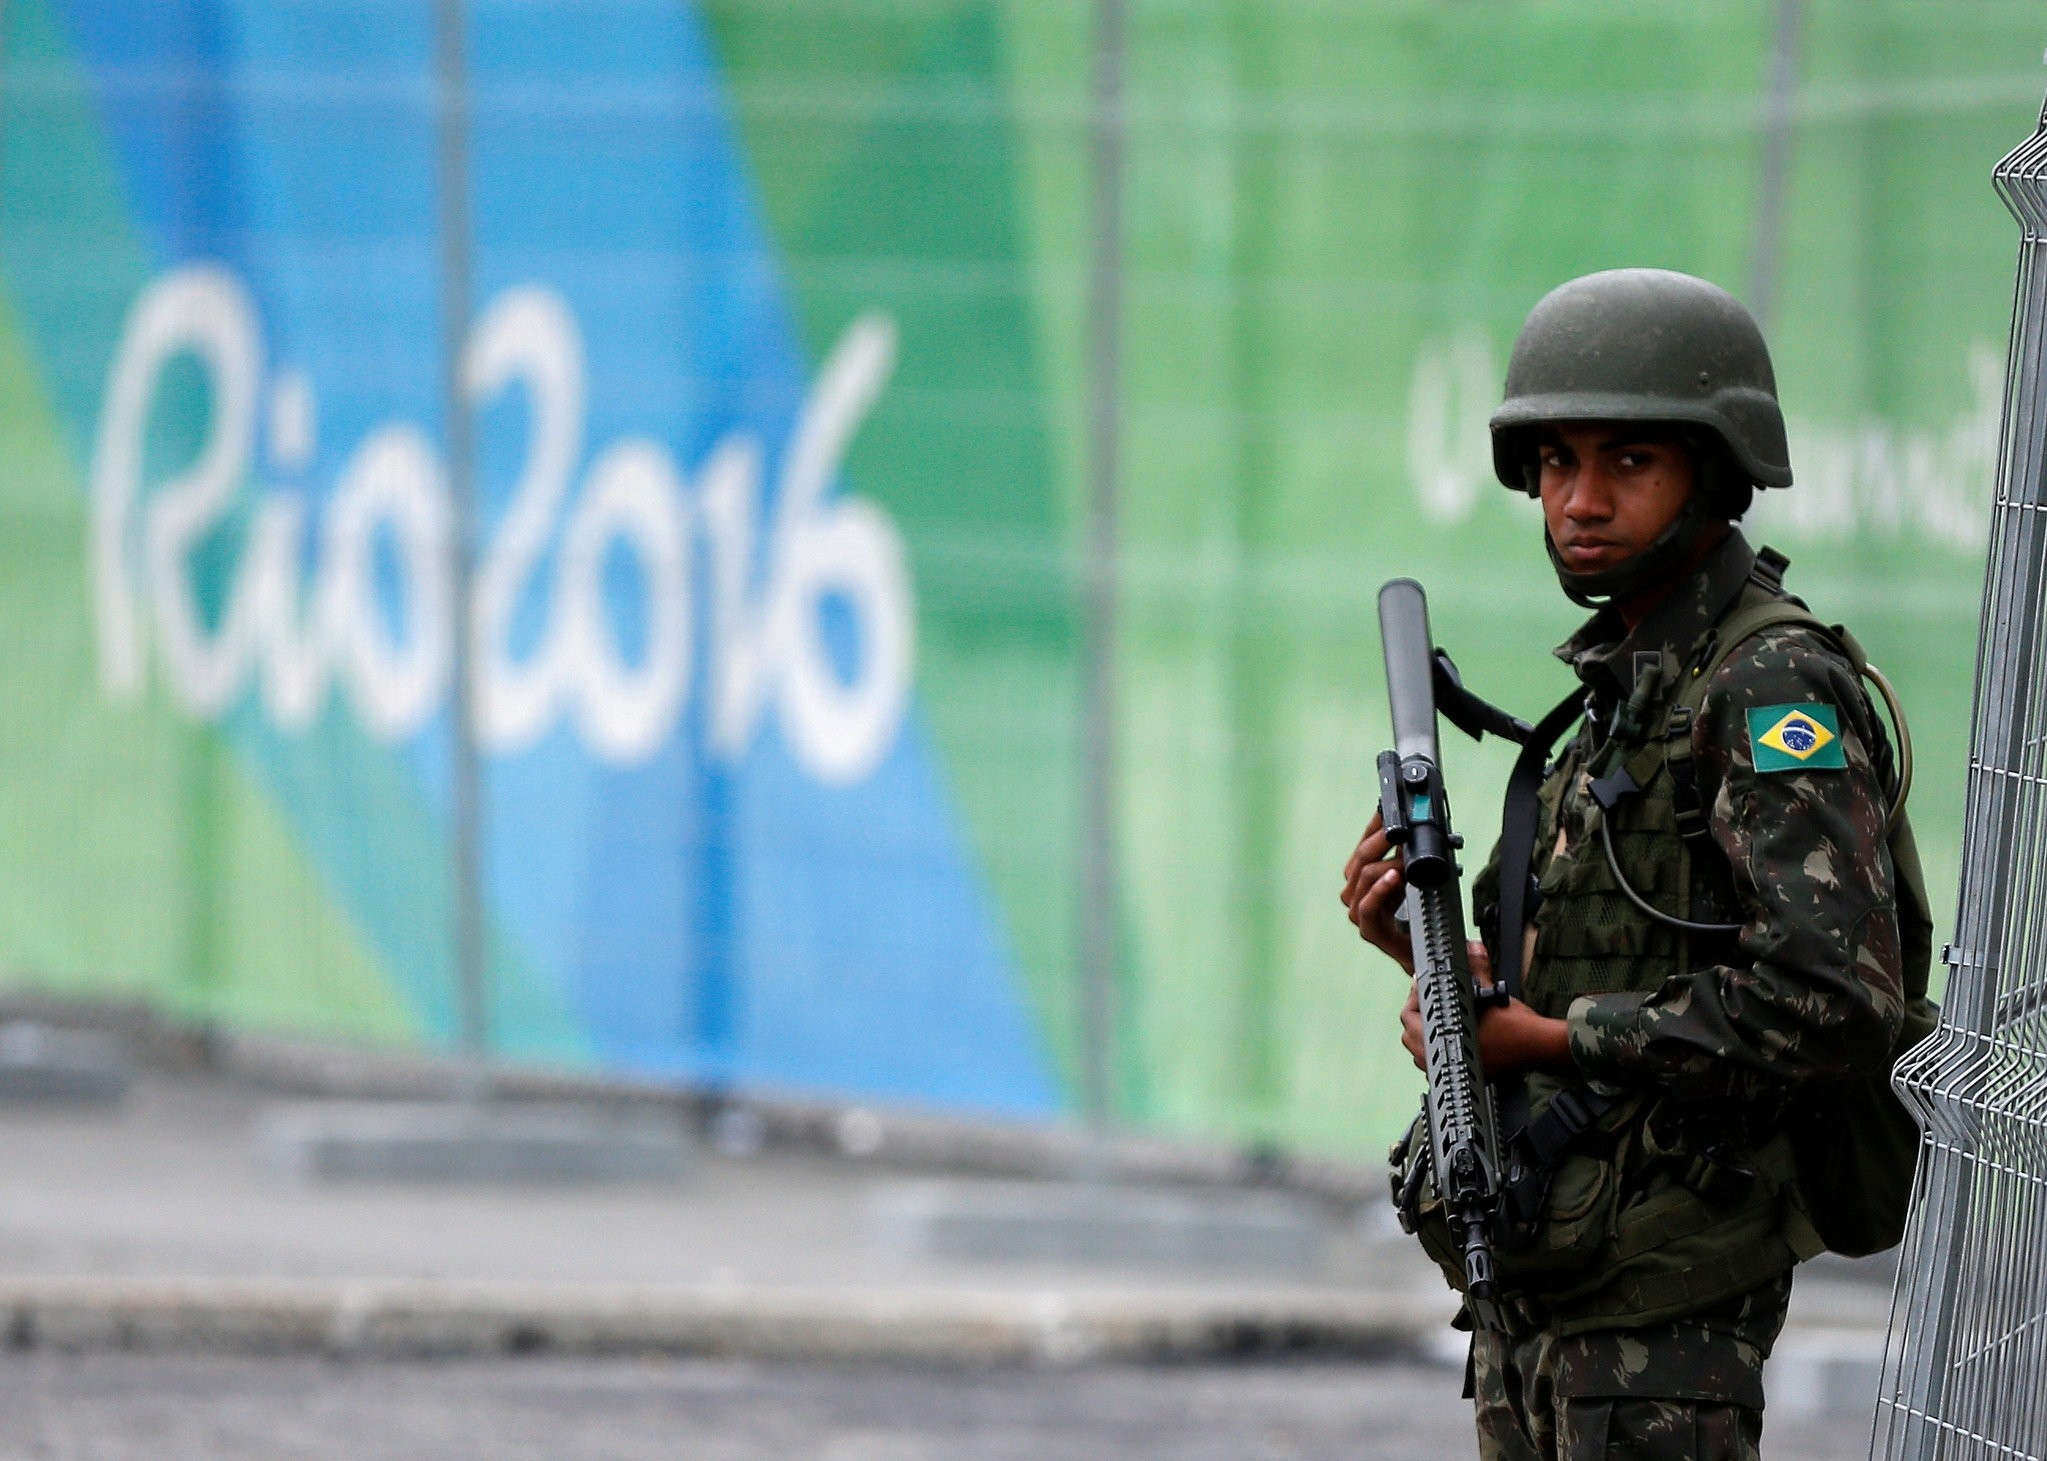 A soldier of the Brazilian Armed Forces stands guard outside the 2016 Rio Olympics Park in Rio de Janeiro, Brazil, July 21, 2016. (REUTERS Photo)